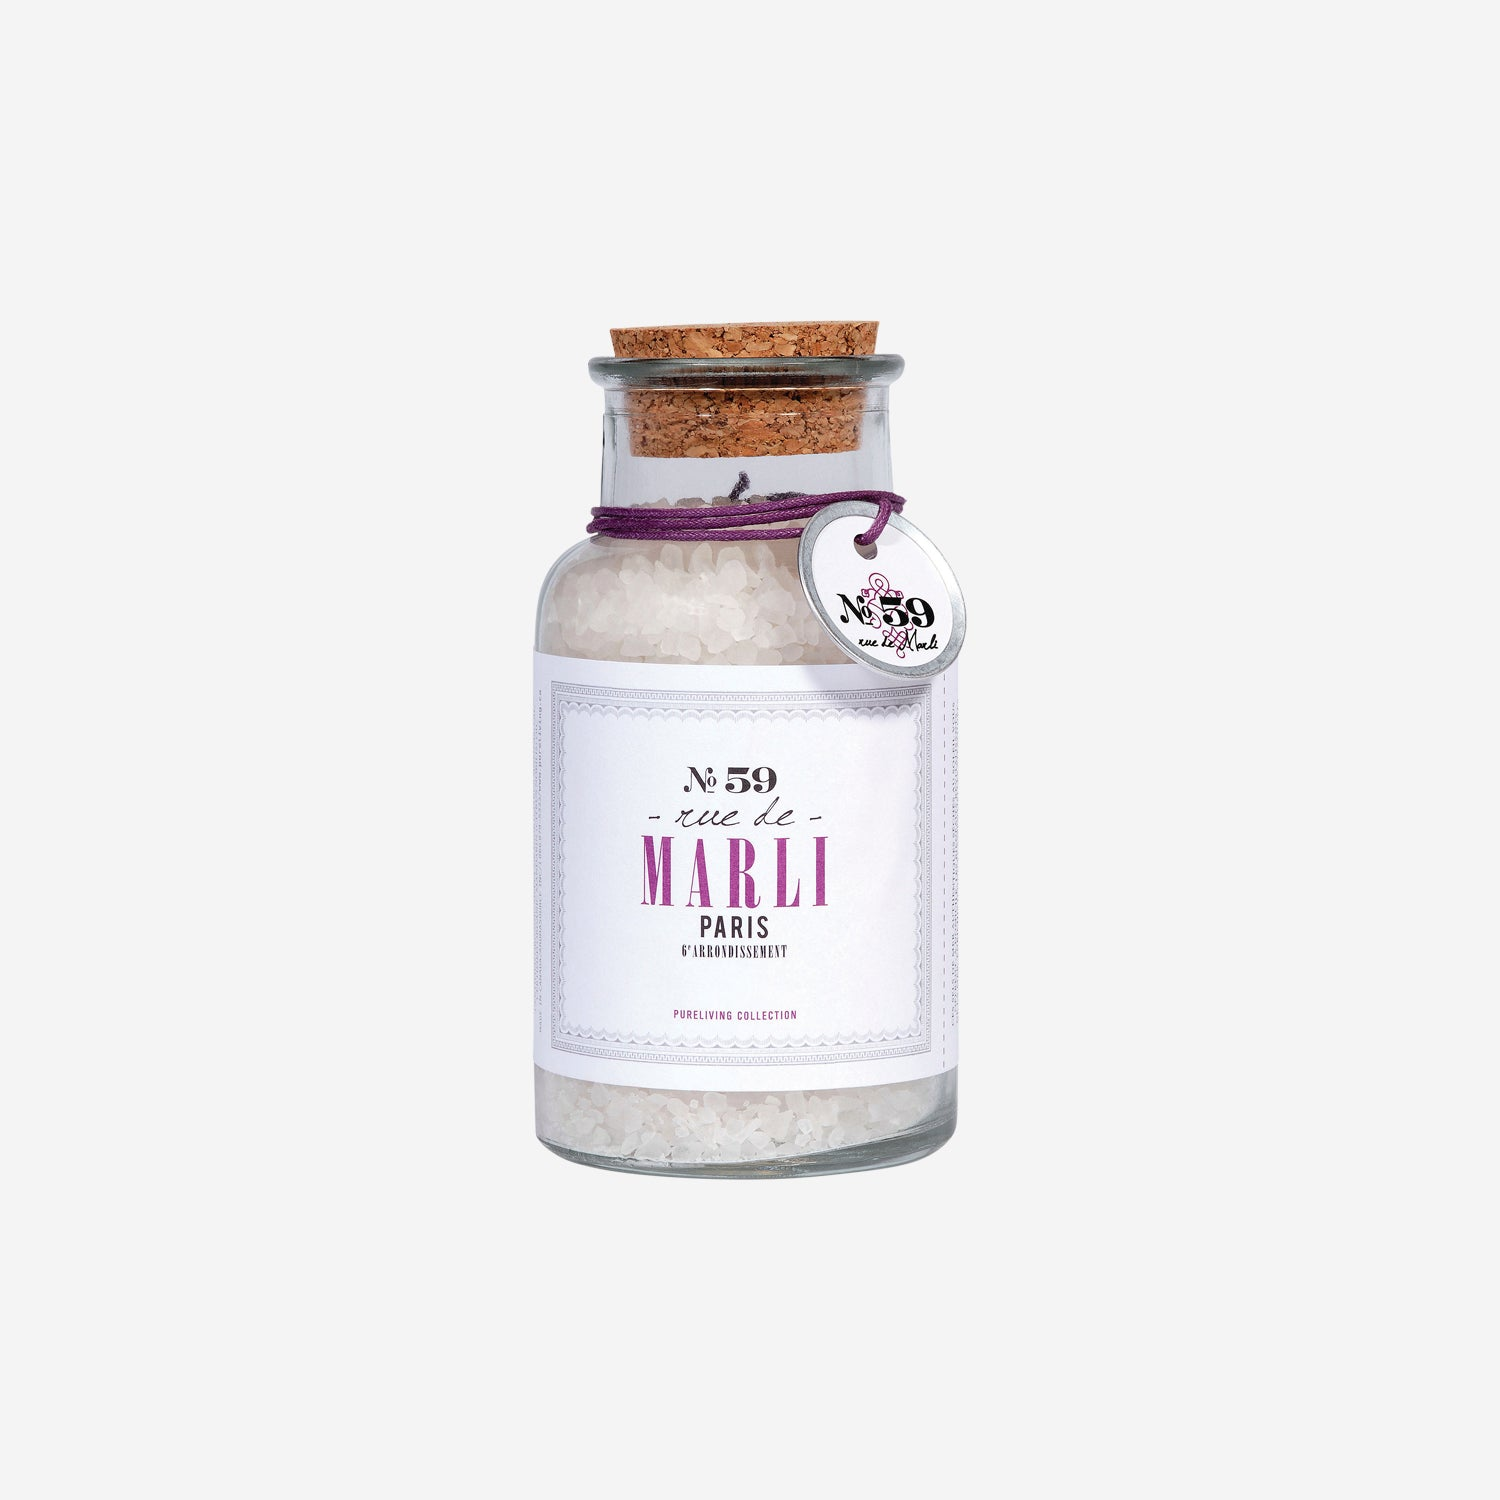 Citron de Vigne Bath Sea Salts